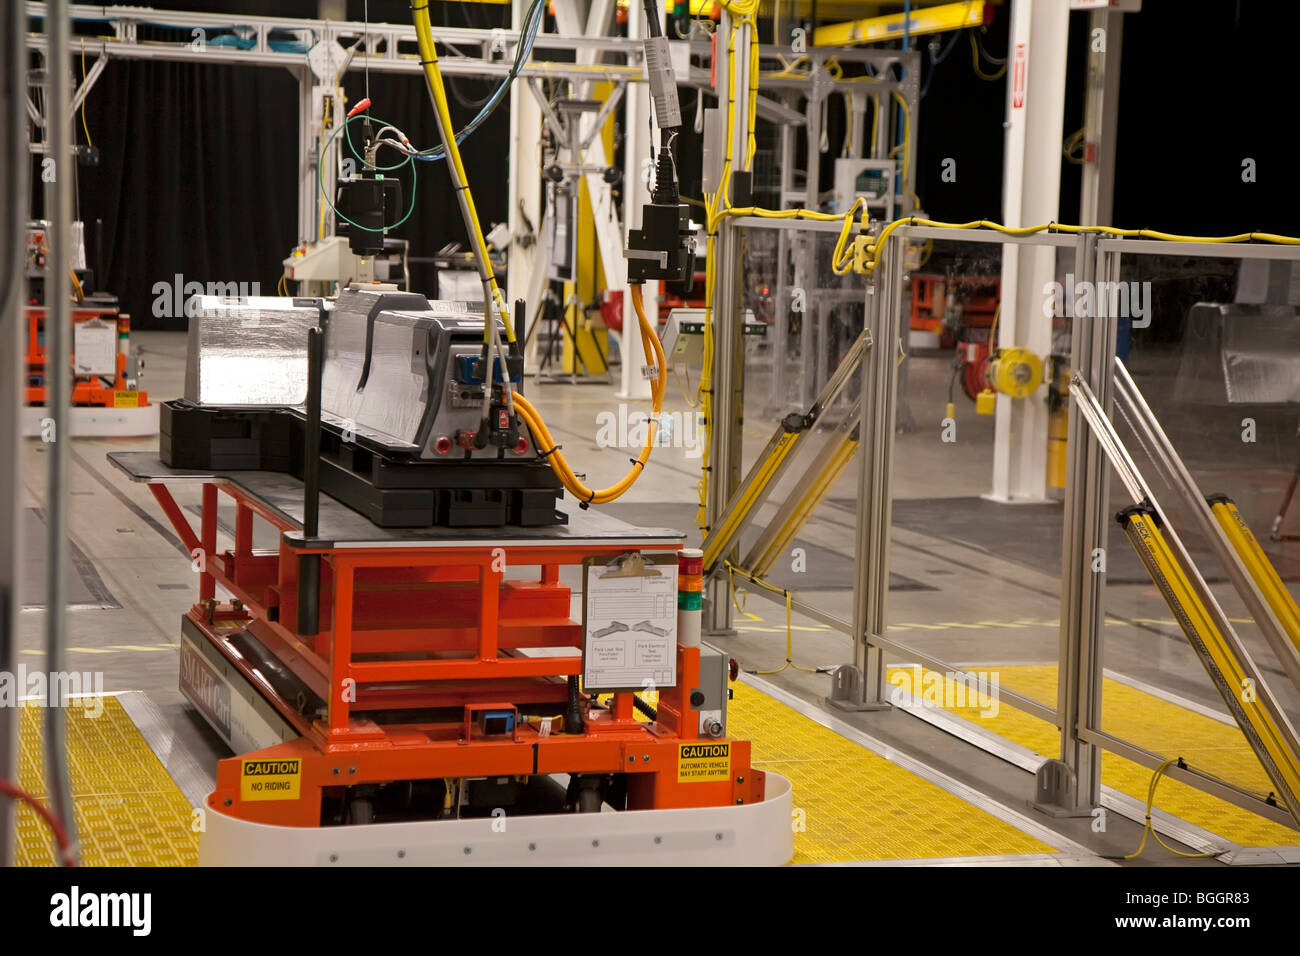 General Motors manufacturing plant for the battery pack for the Chevrolet Volt electric car - Stock Image